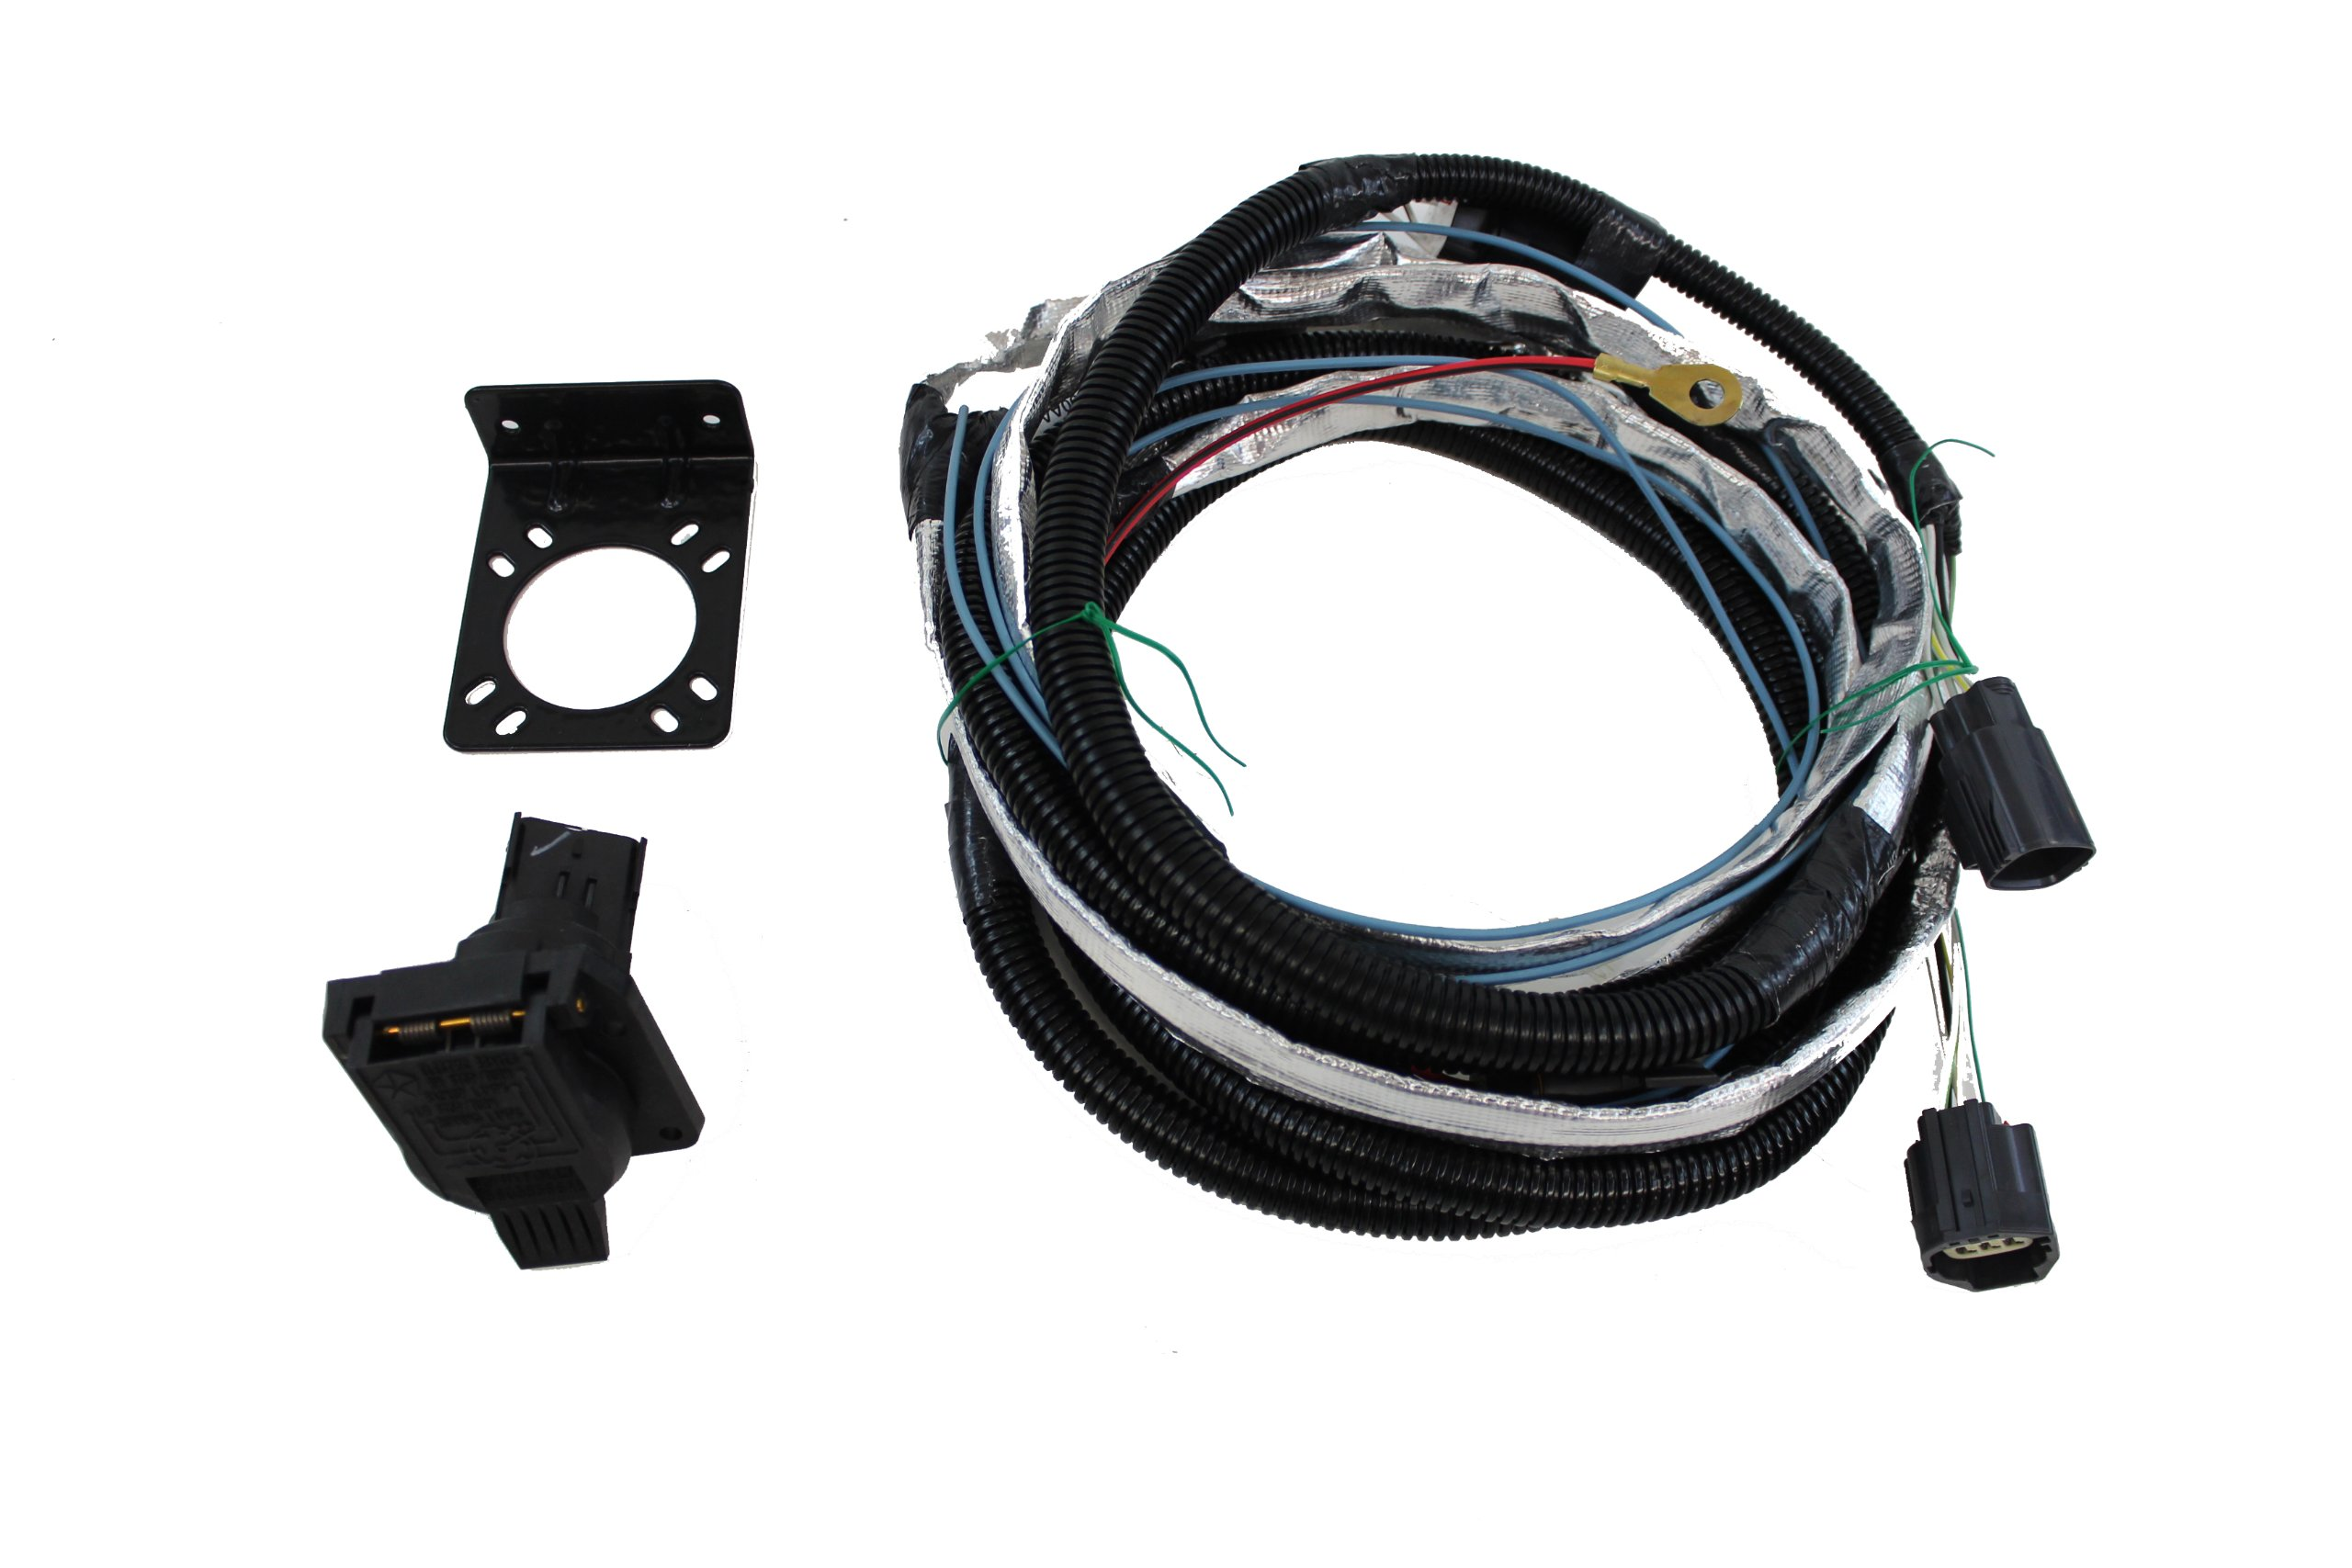 Genuine Jeep Accessories 82210214AB Trailer Tow Wiring Harness by Jeep